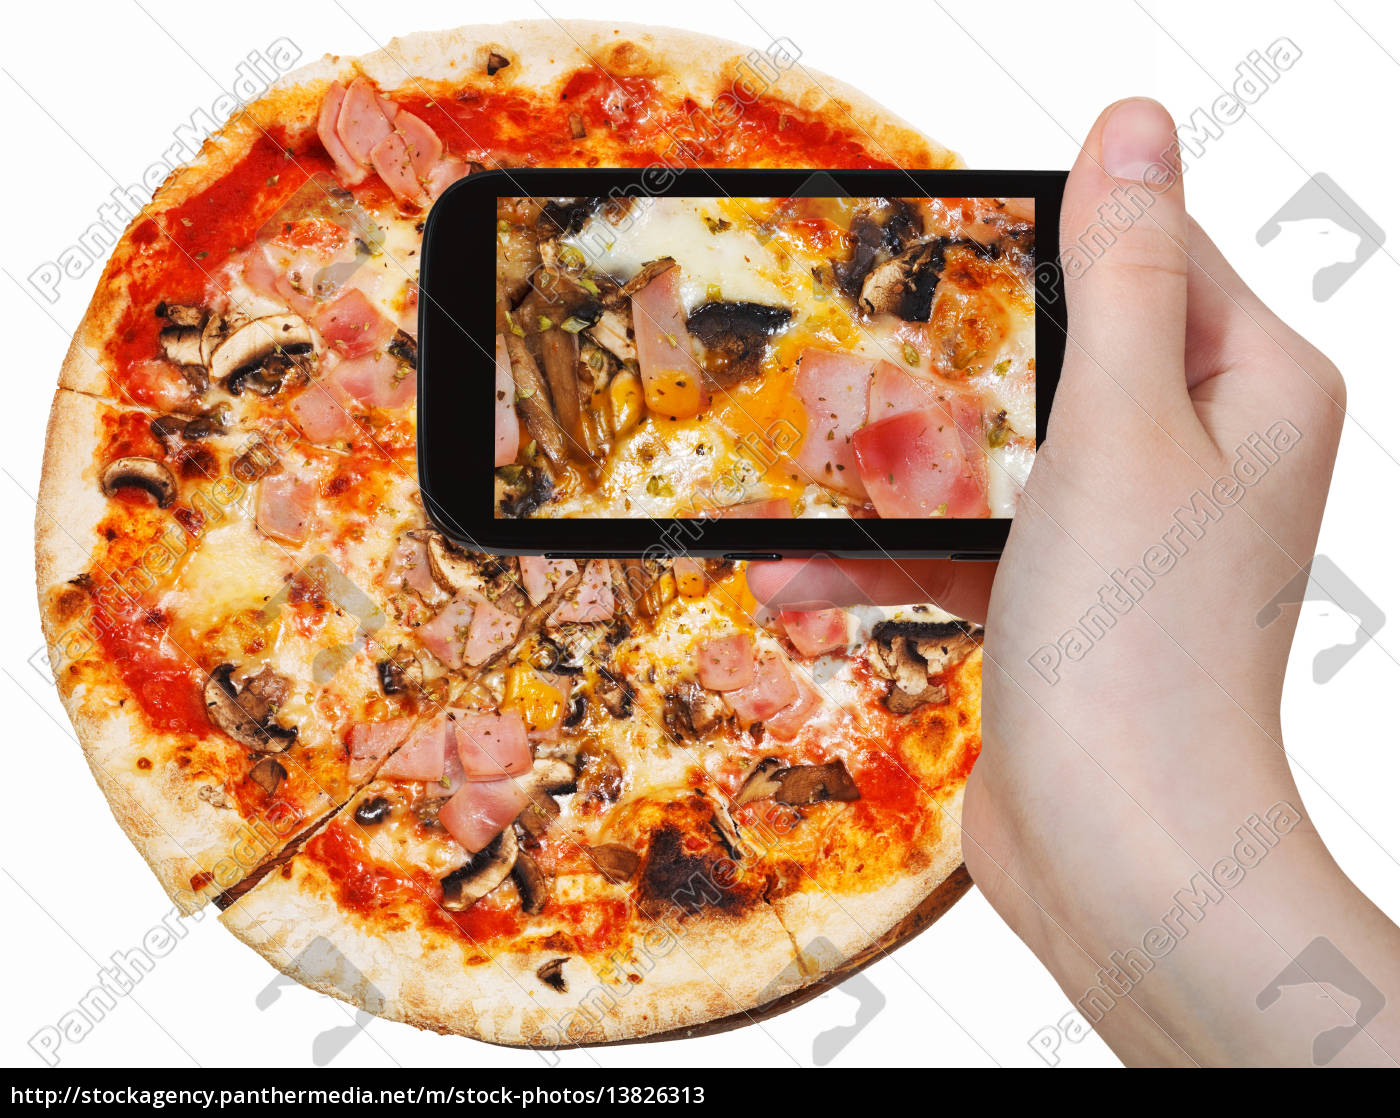 tourist, photographs, of, pizza, with, prosciutto - 13826313